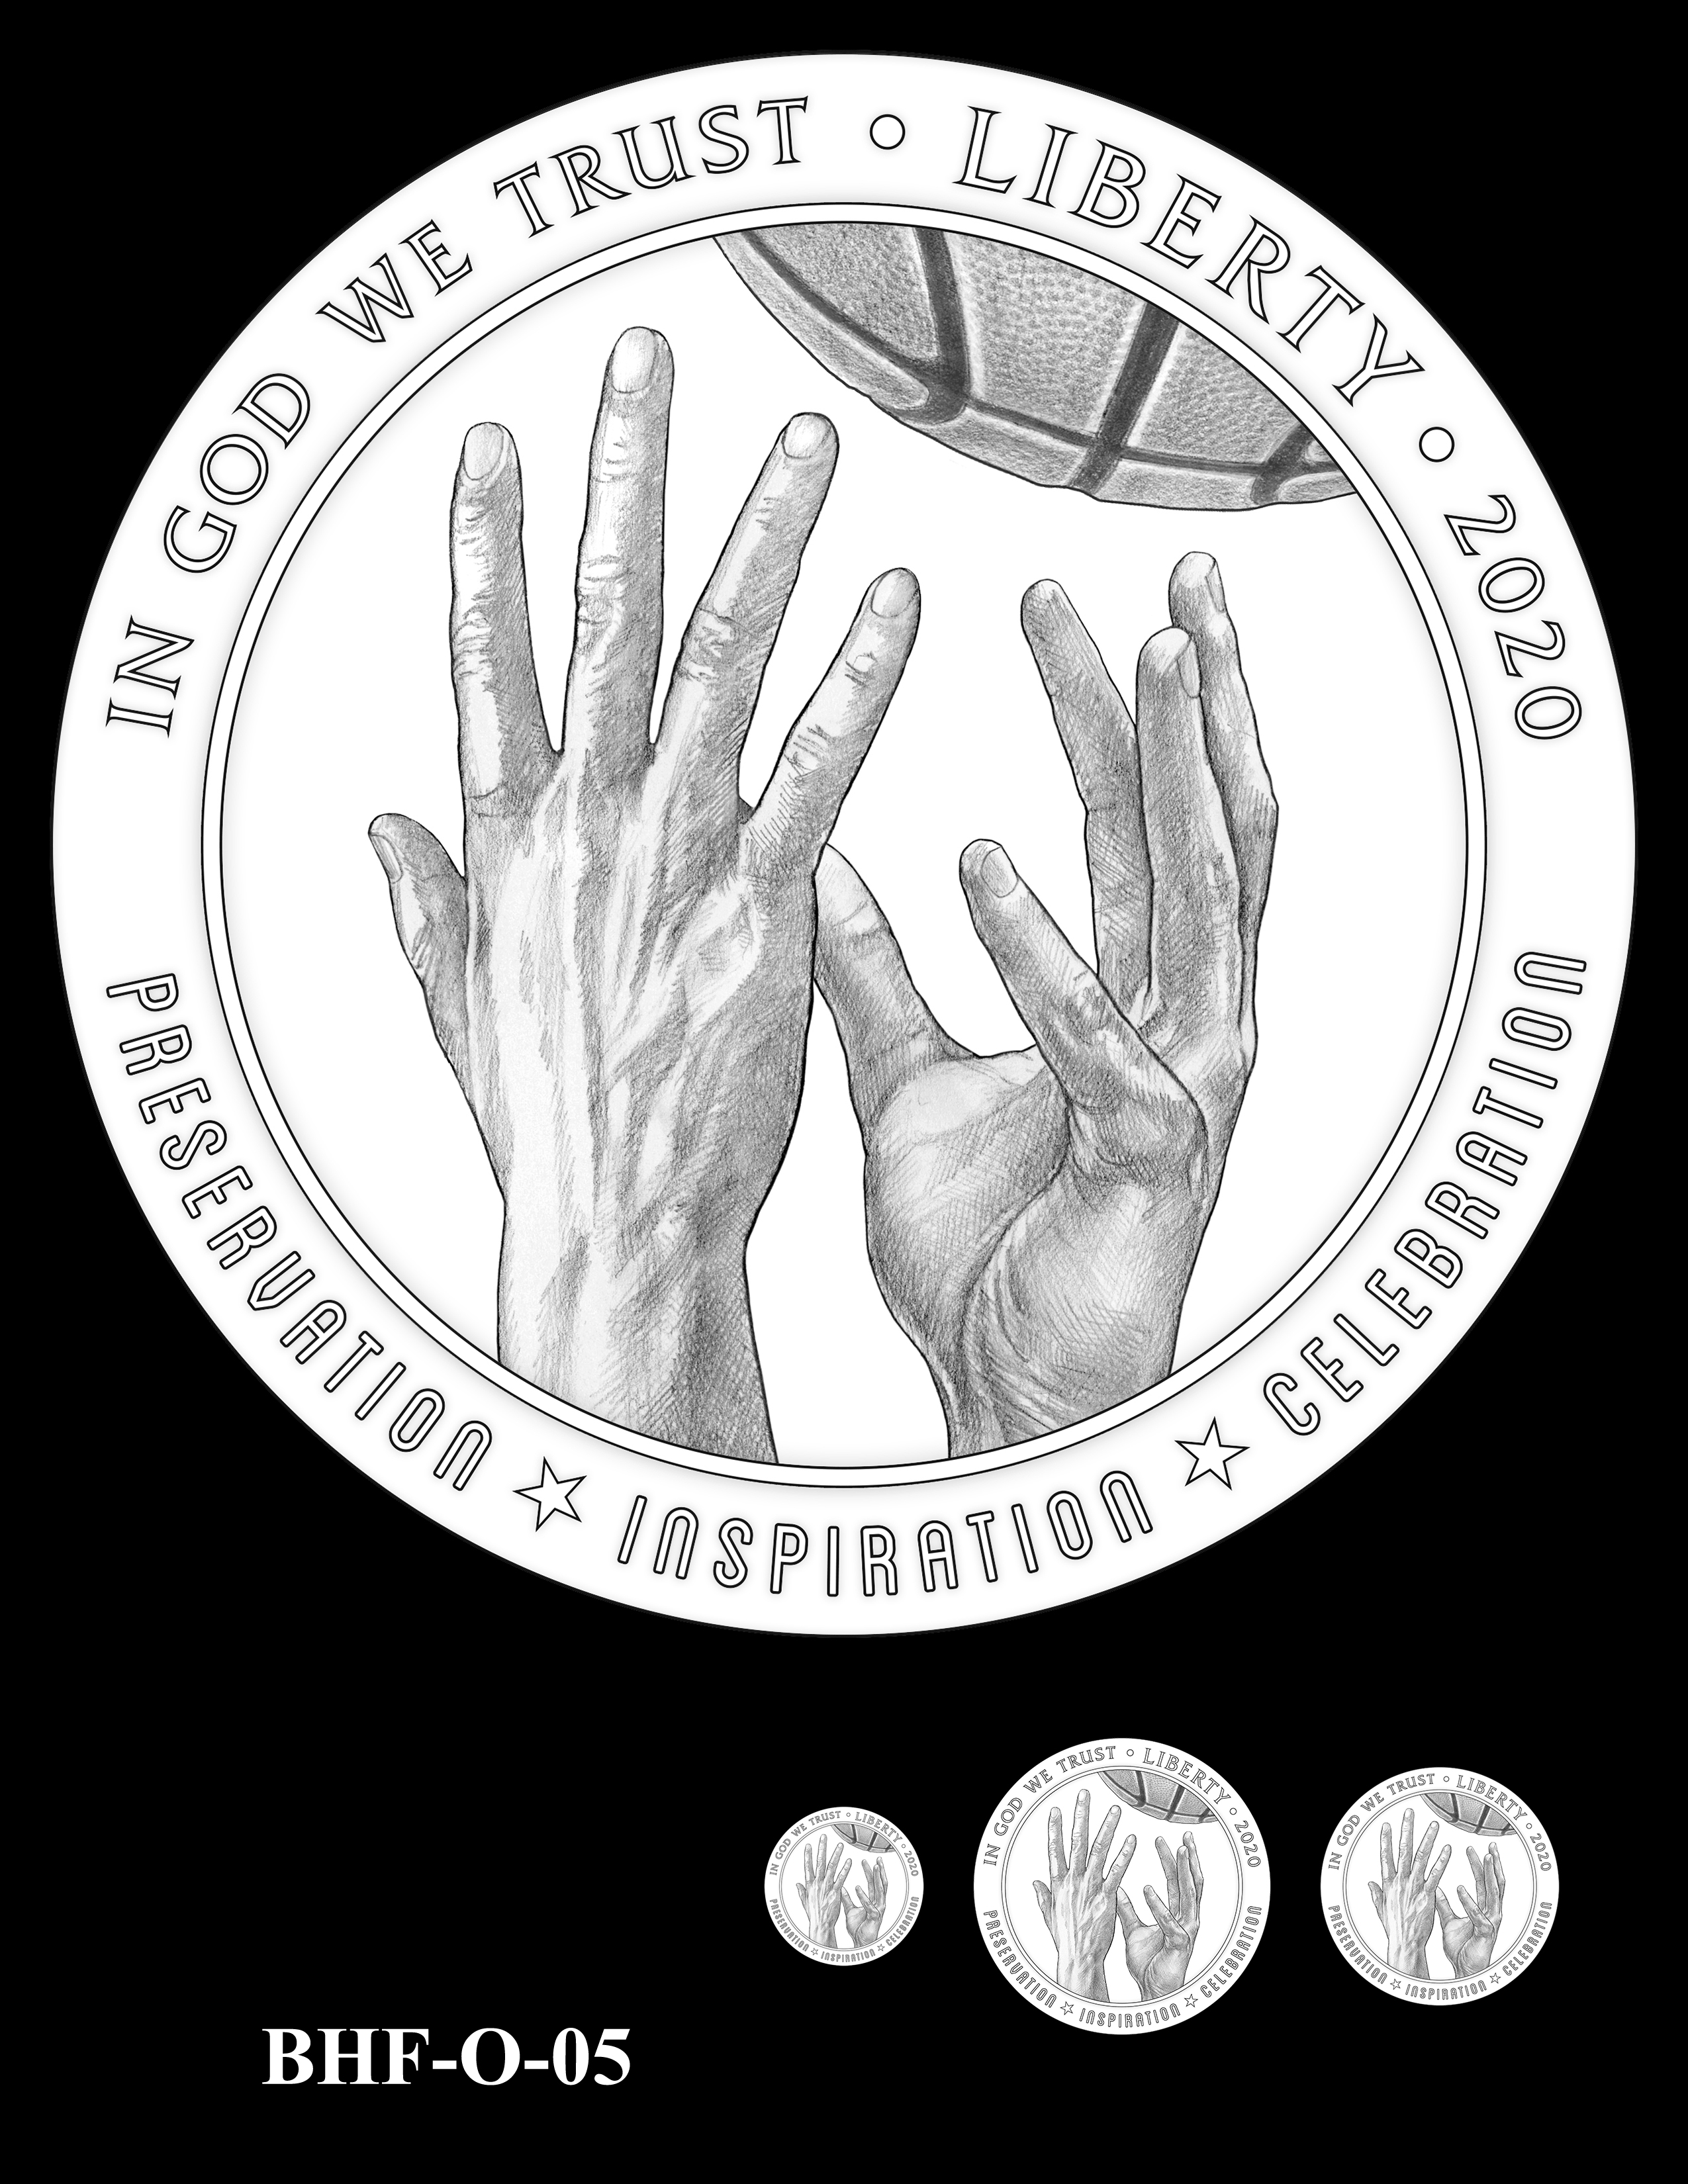 BHF-O-05 -- 2020 Basketball Hall of Fame Commemorative Coin Program - Common Obverse